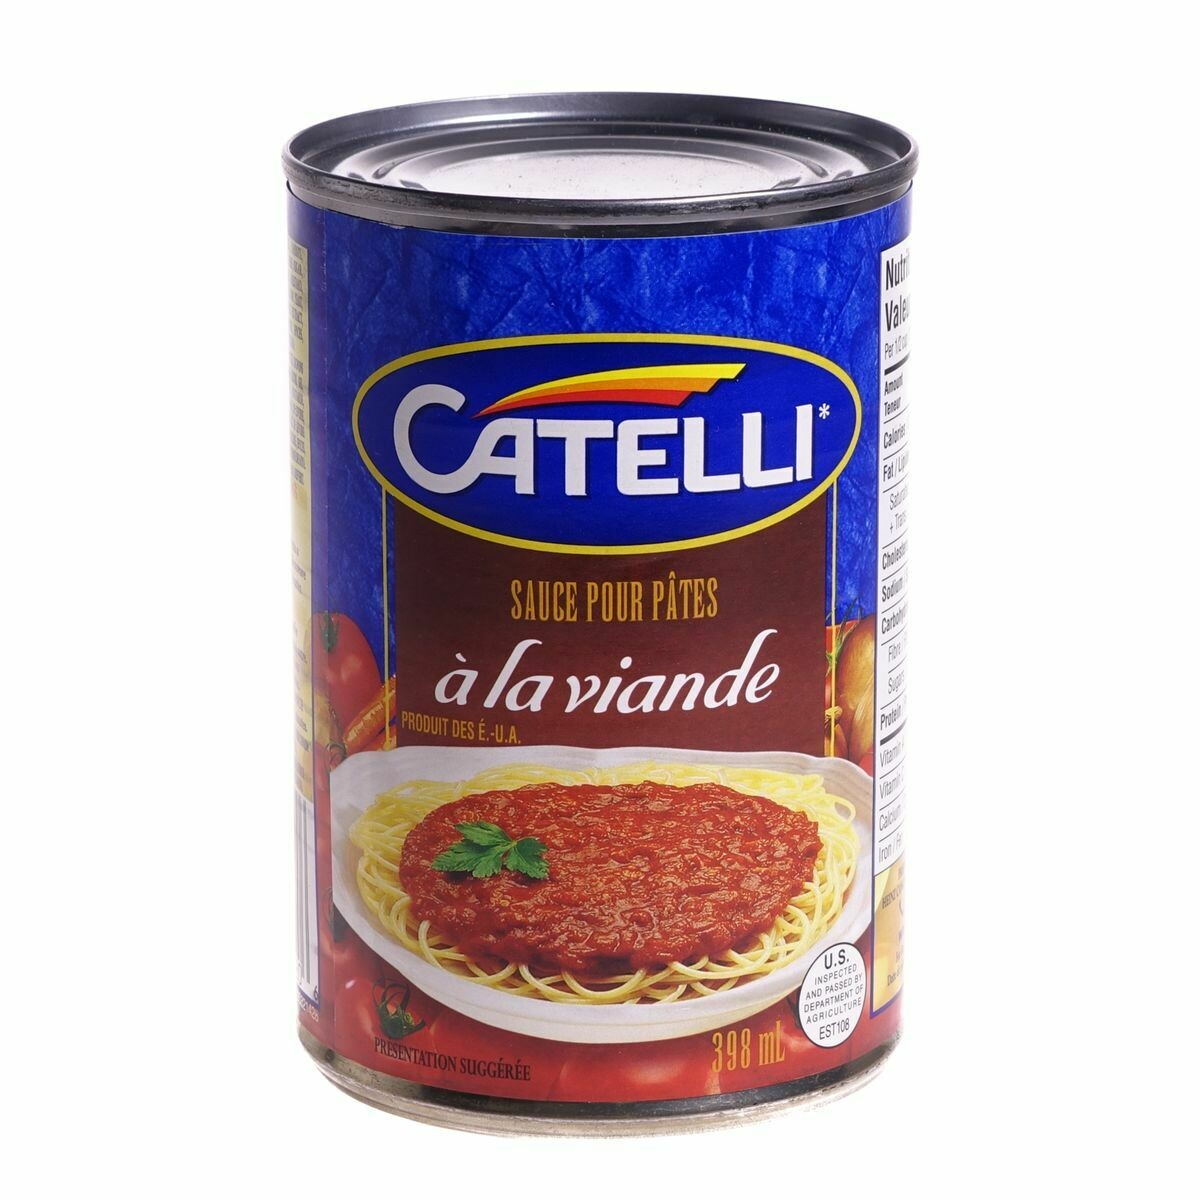 Sauce Spaghetti Catelli 398ML 4,09$